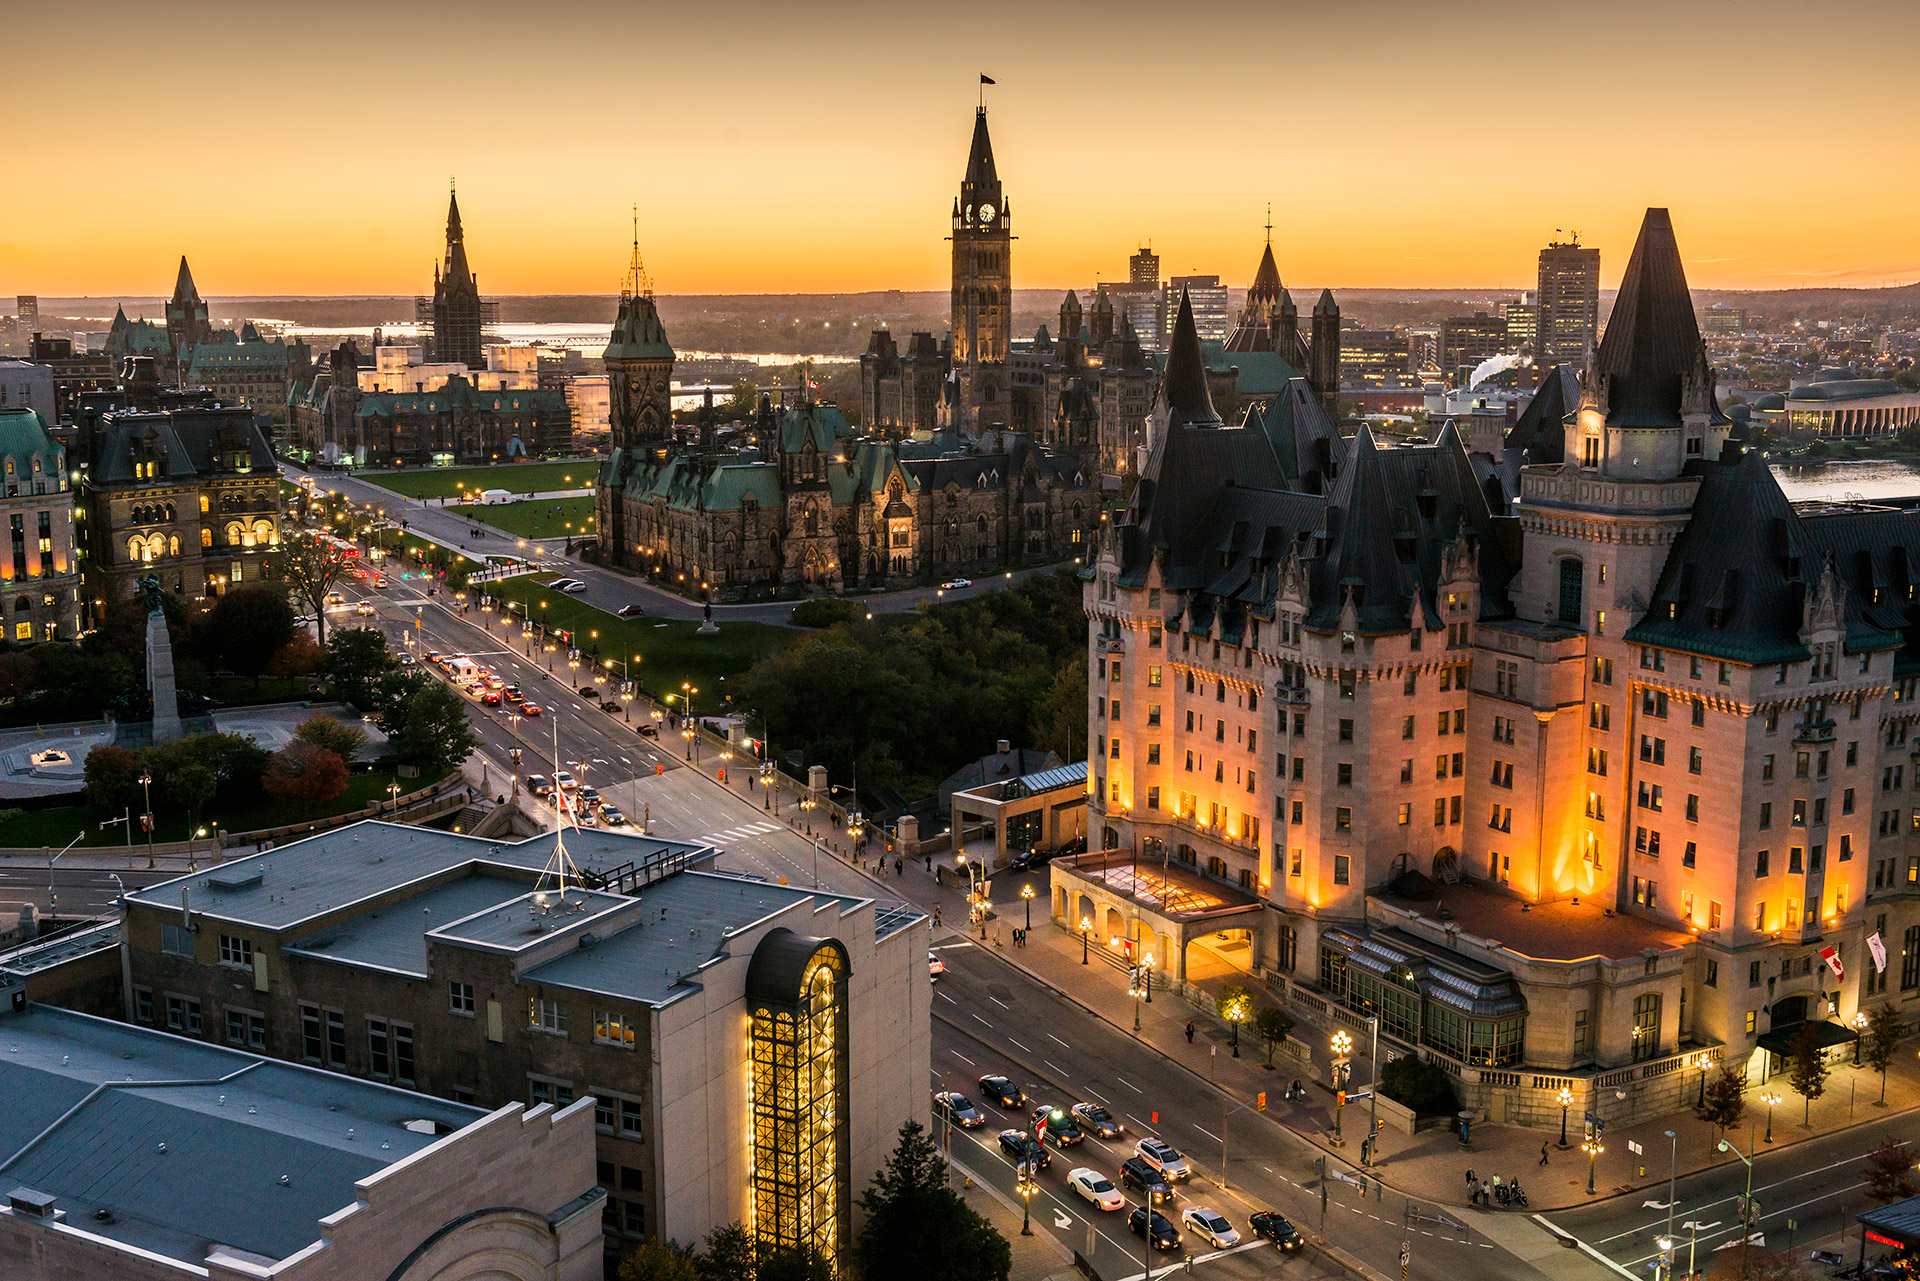 Overhear view of the Parliament Hill and Wellington Street in Ottawa